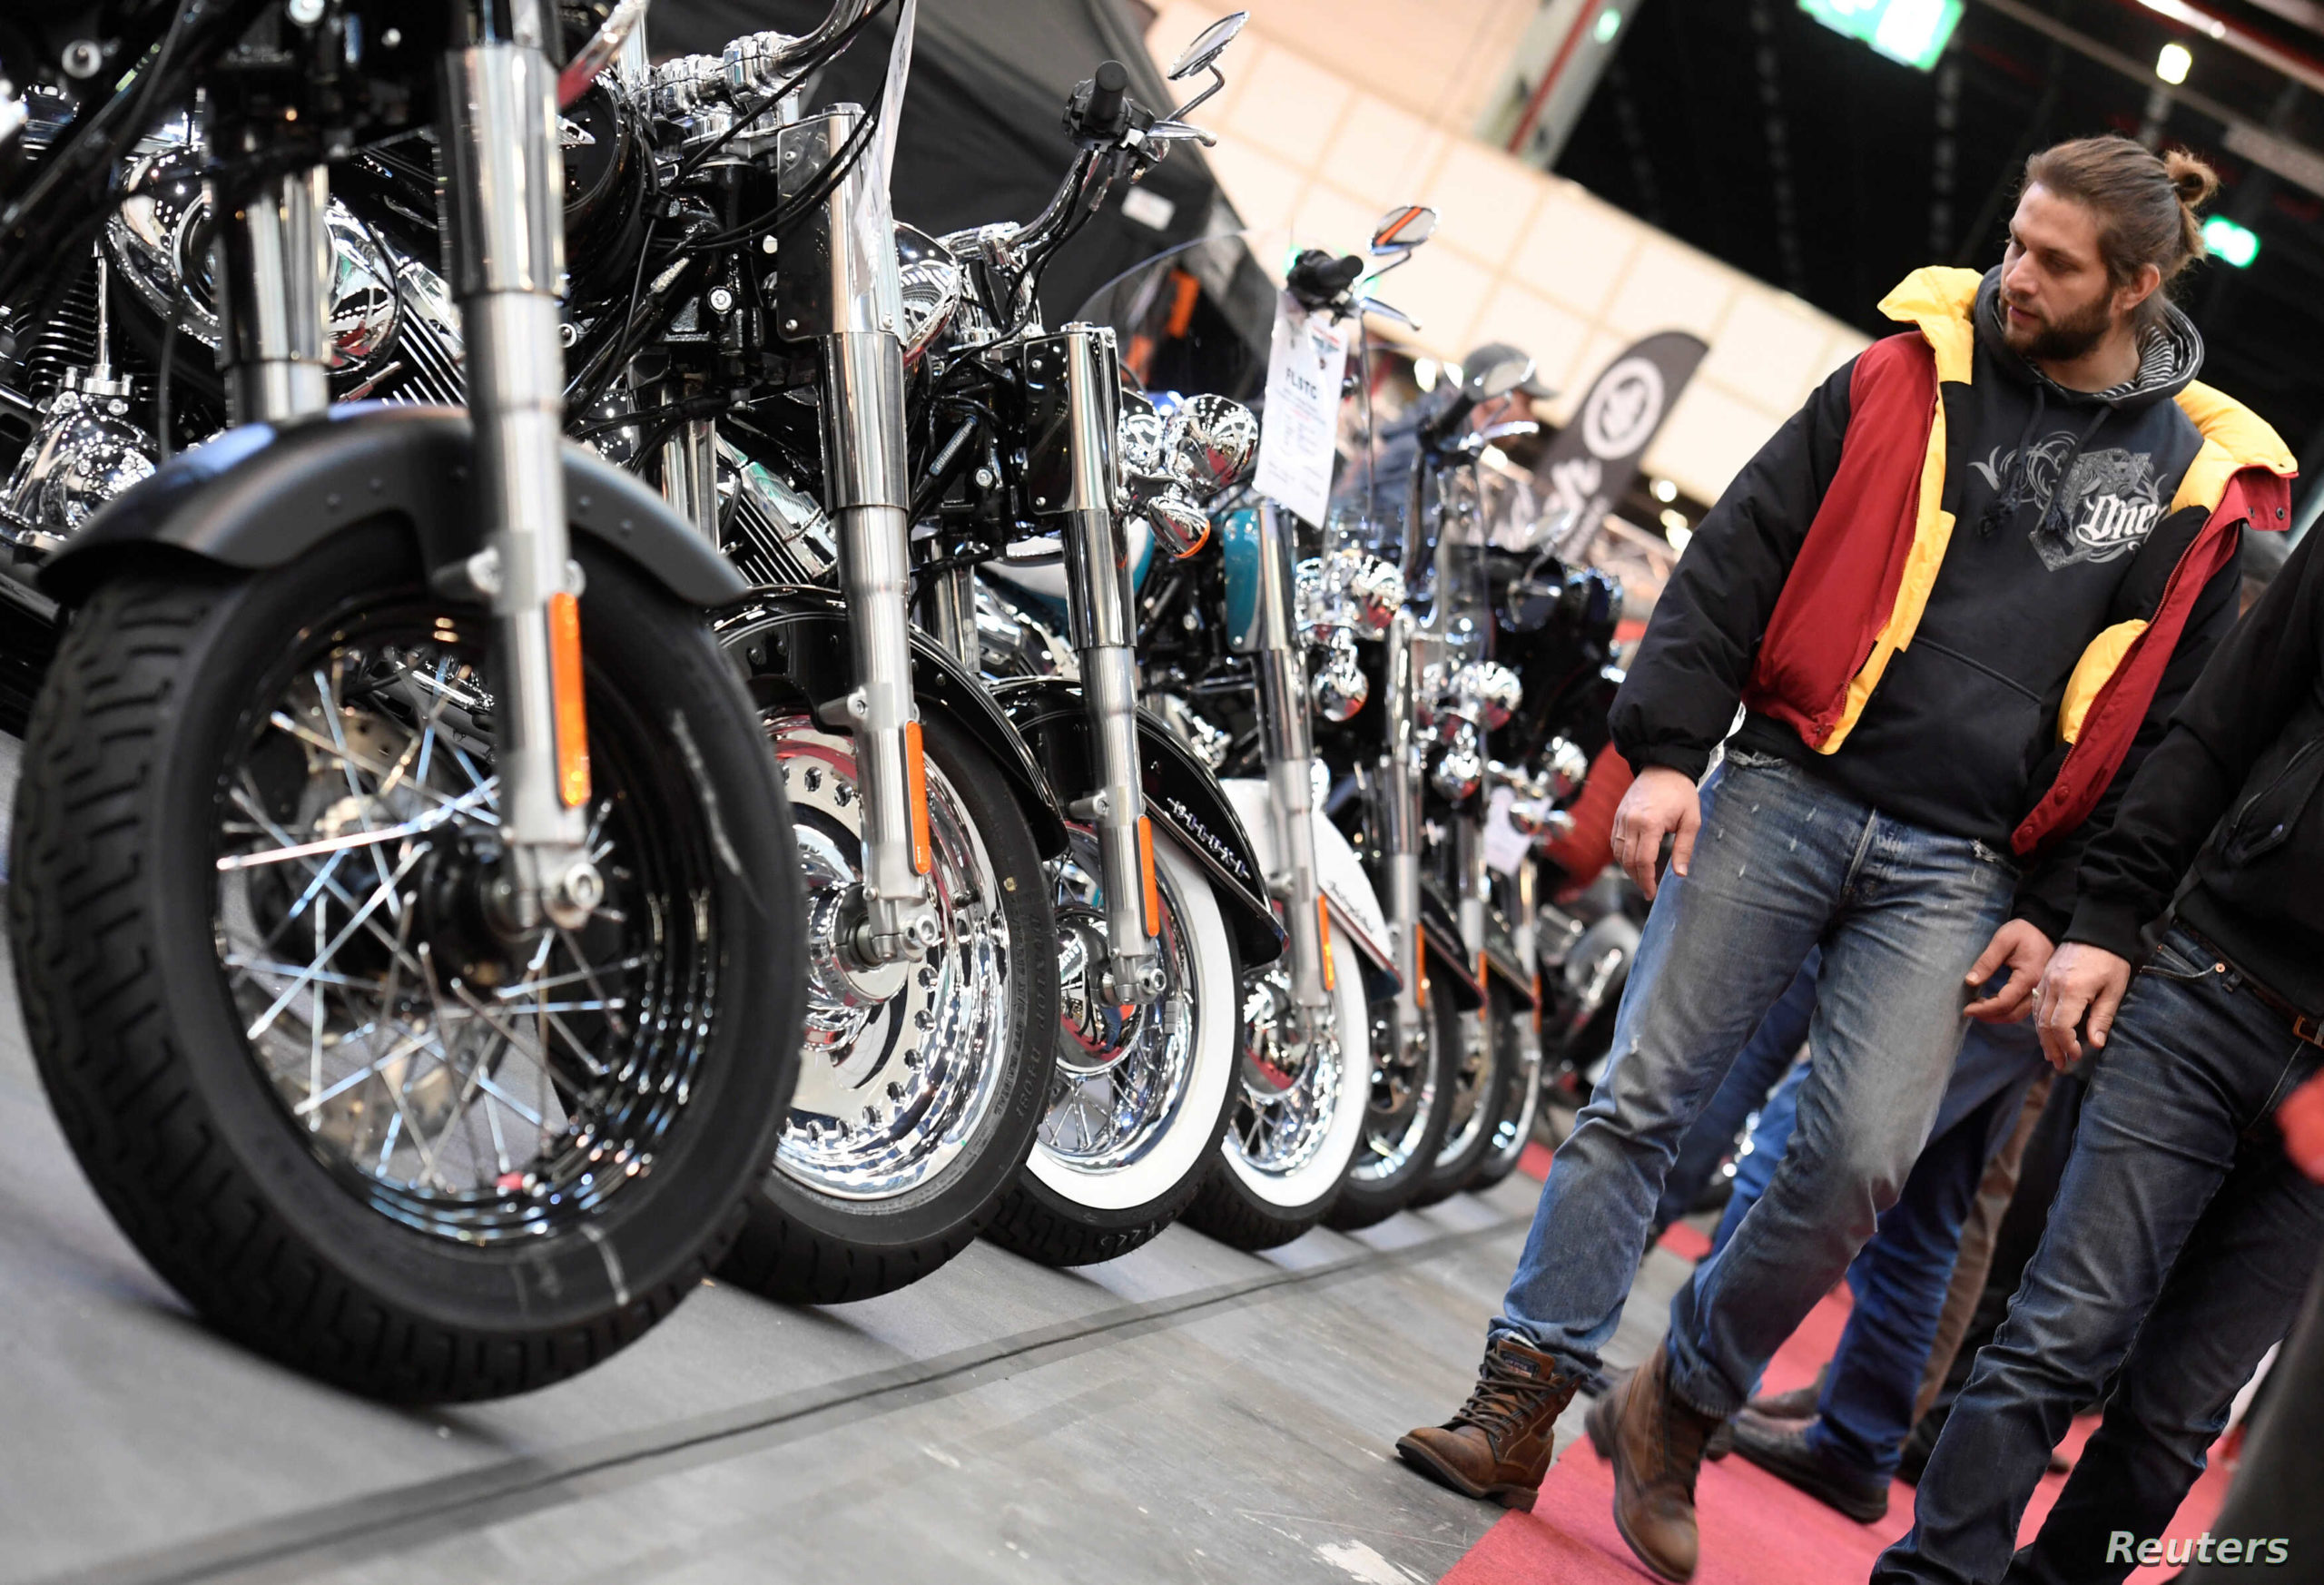 A view of Harley-Davidson motorcycles lined up in Europe.